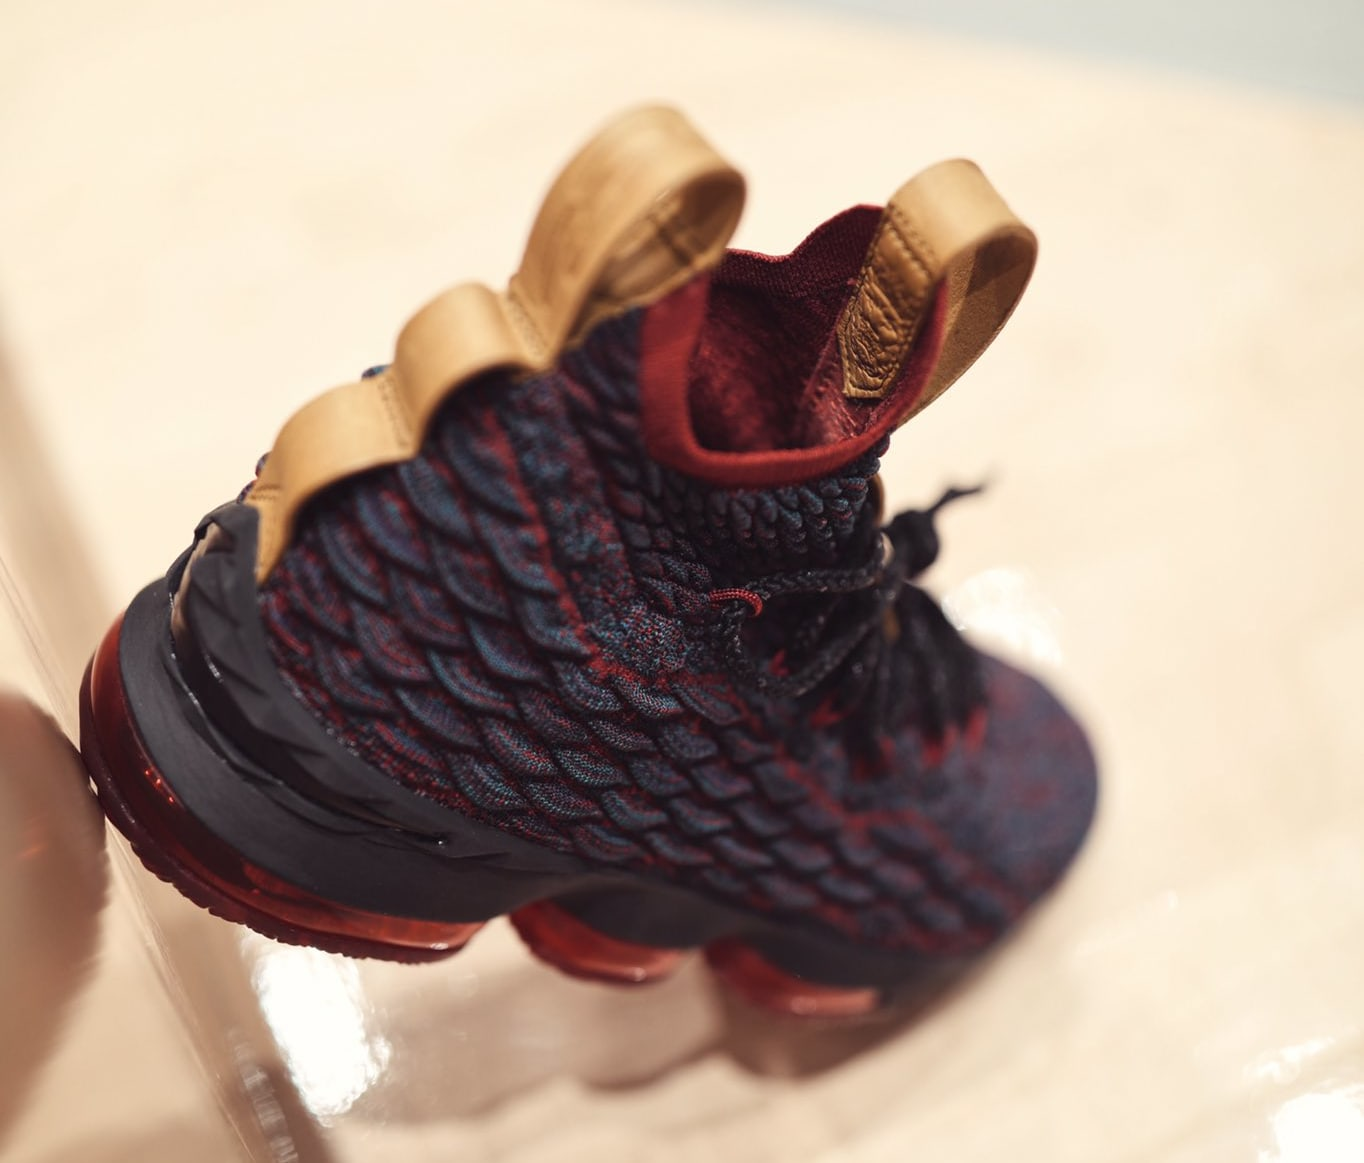 Nike LeBron 15 Cavs New Heights Release Date Heel